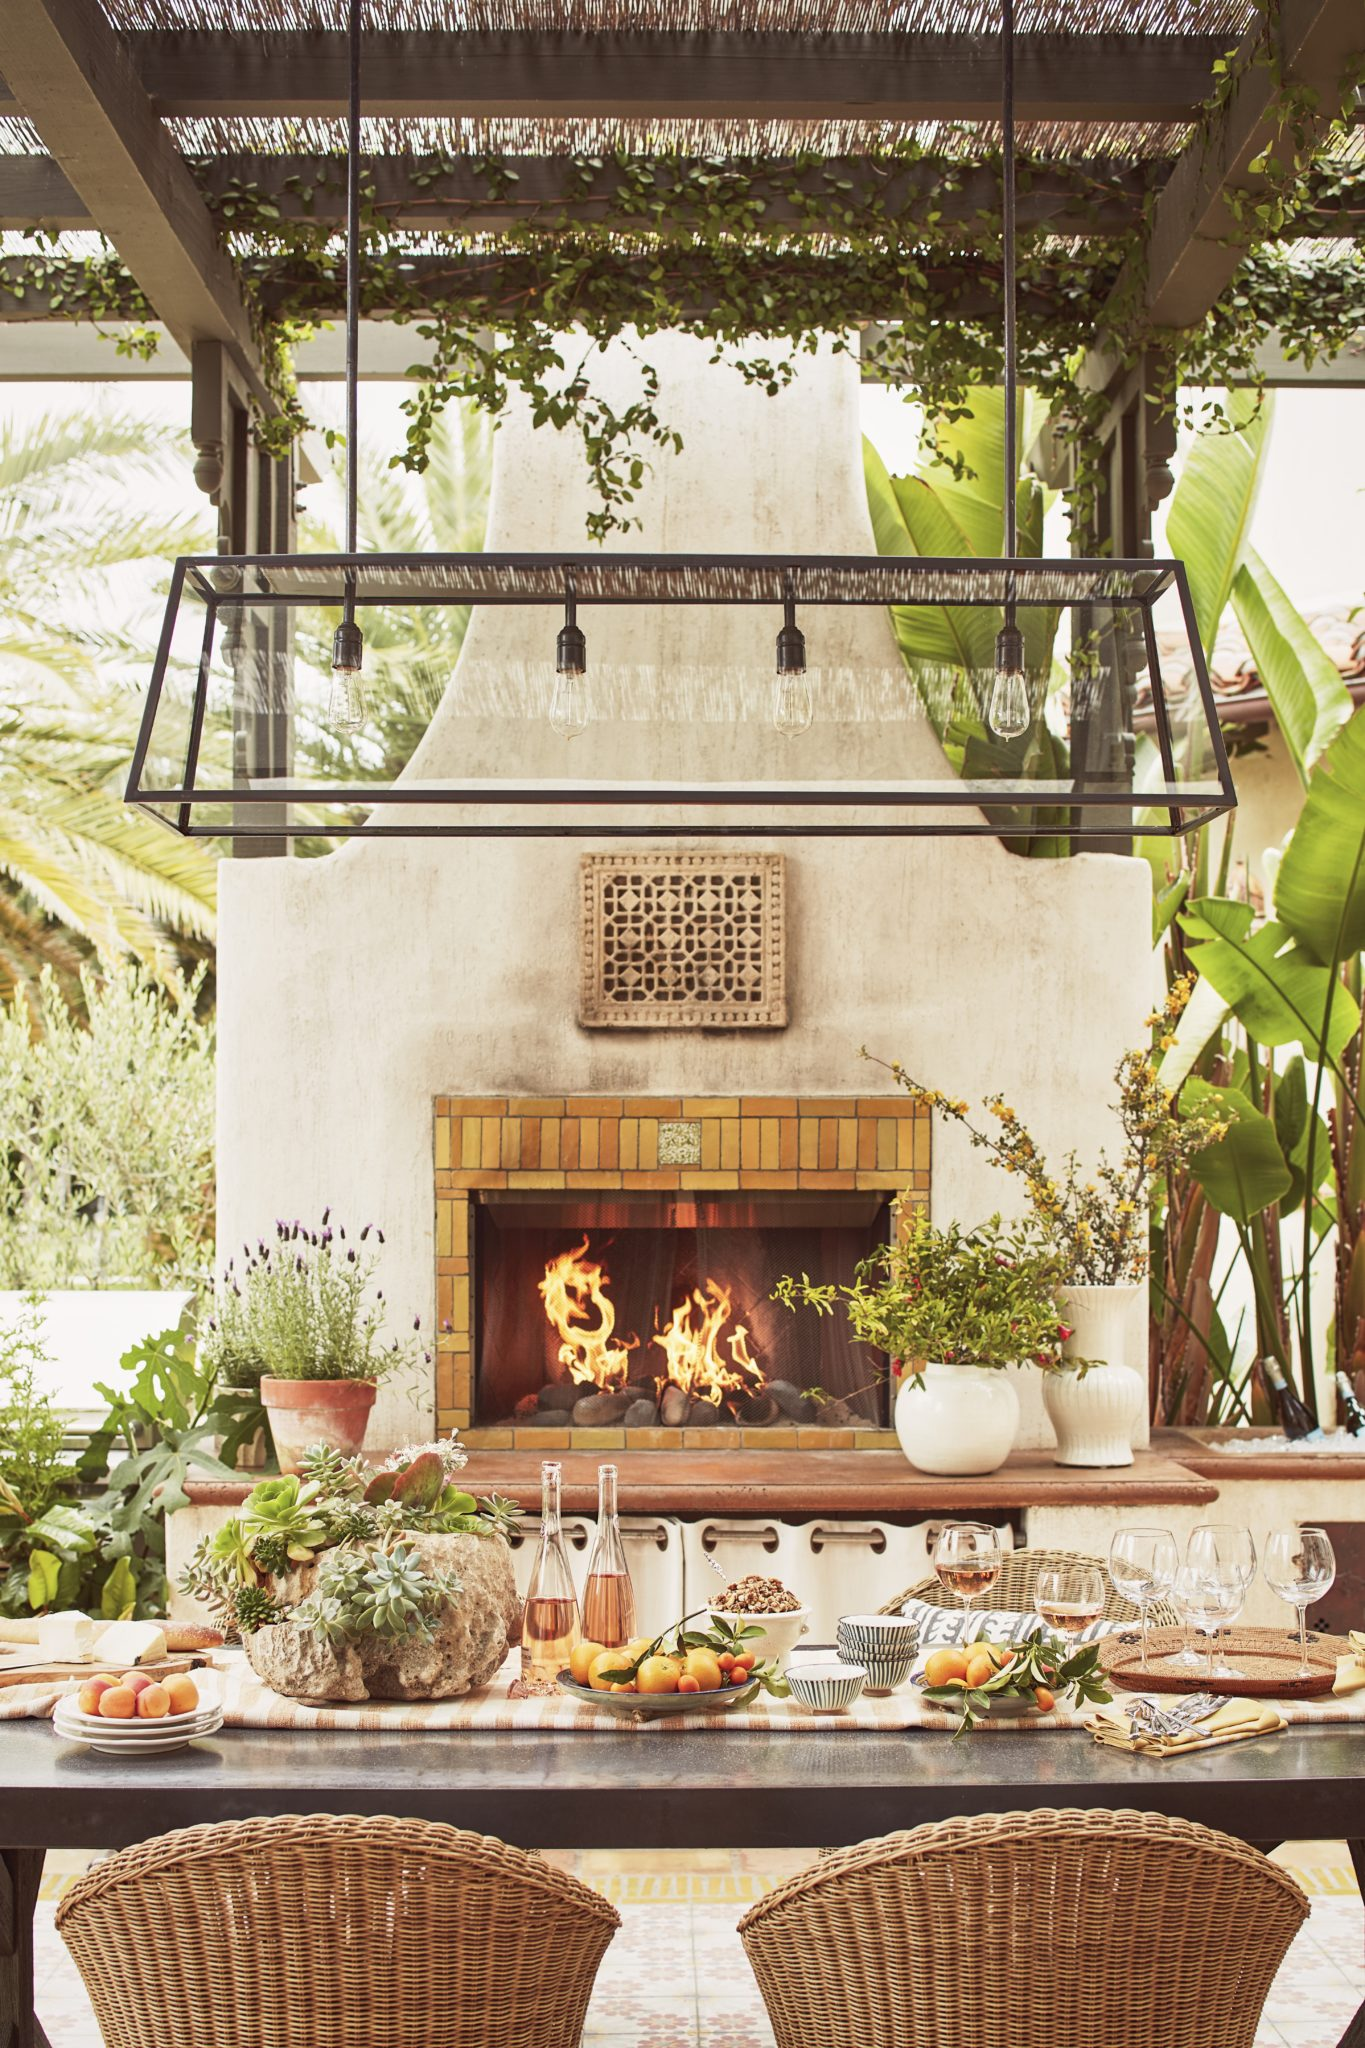 Malibu Spanish Colonial, Courtyard Outdoor Dining, Kitchen, Fireplace w/pergola by Interior Archaeology